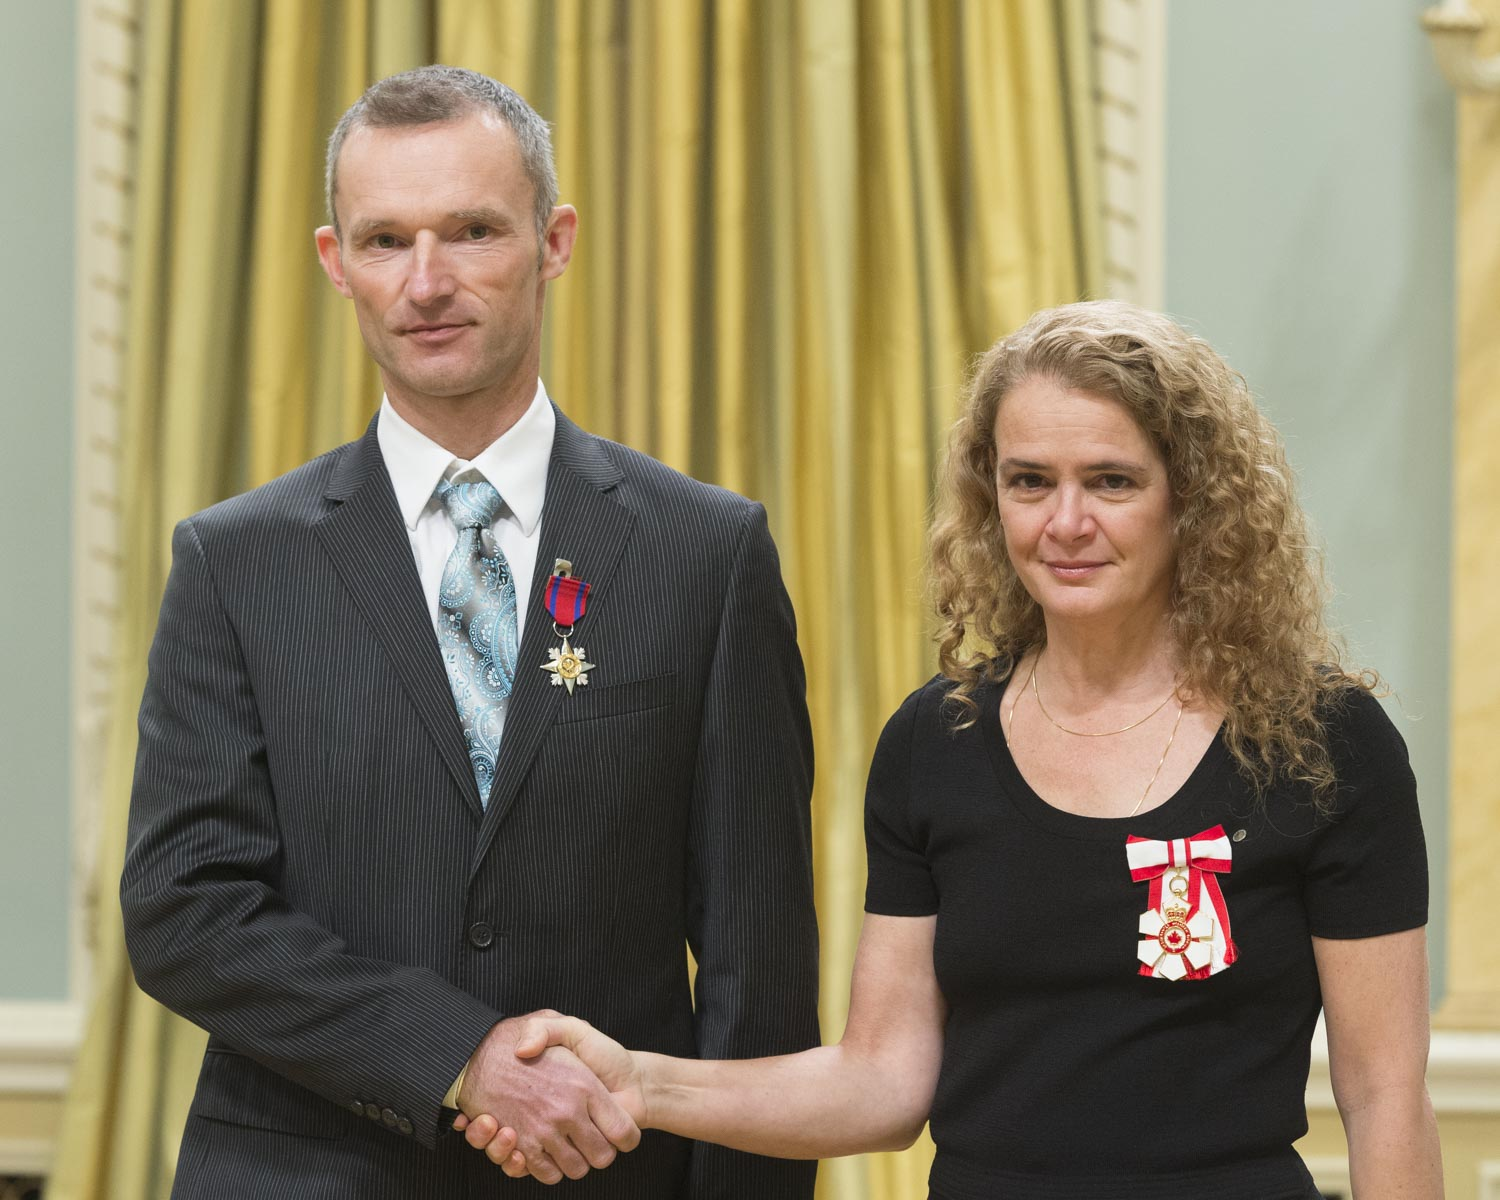 On November 9, 2015, Sebastian Taborszky rescued a man who had fallen during an ice climbing excursion at Murchison Falls, in Jasper National Park, Alberta. Mr. Taborszky and the man were on an 80-metre descent when the victim started to free-fall. Mr. Taborszky tried in vain to grab on to the rope, which sliced through his glove. The victim, tangled in the rope, stopped falling 10 metres from the ground. Without any equipment or support, Mr. Taborszky climbed down the wall of ice to reach his injured companion. Over the next seven hours, in -15°C temperatures, Mr. Taborszky endured exhaustion, dehydration and his own injuries as he dragged the severely injured victim over the steep, rocky terrain back to their vehicle. He then hoisted the victim inside the car and drove for an hour before he could alert the authorities for help.